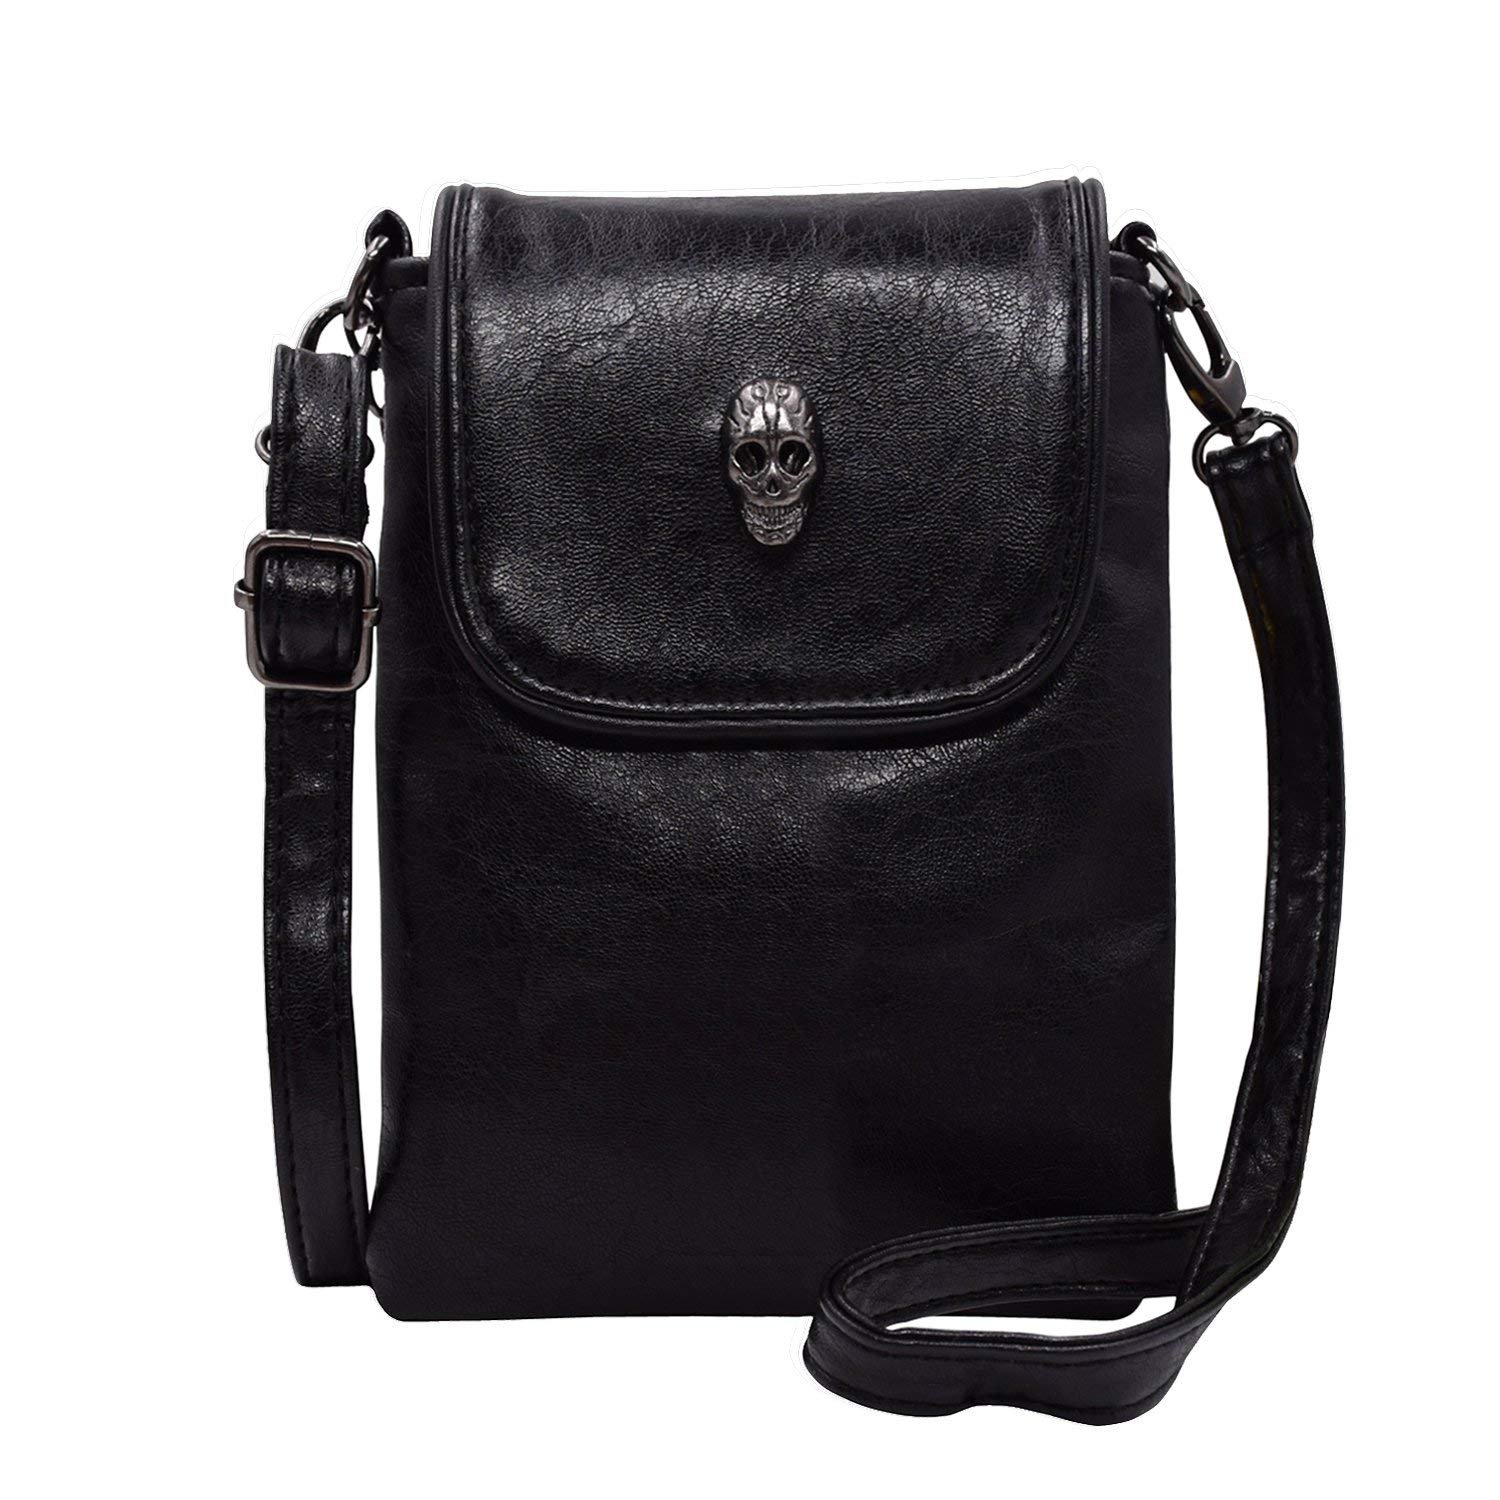 Women Single Shoulder Crossbody Bags, WITERY Gothic Studded Skull Head Mini Single Shoulder Crossbody Bag / Acrossbody Bags Satchel / Messenger Bag Cellphone Money Card Coin Storage Bag Wallet Black CLOA0016-02